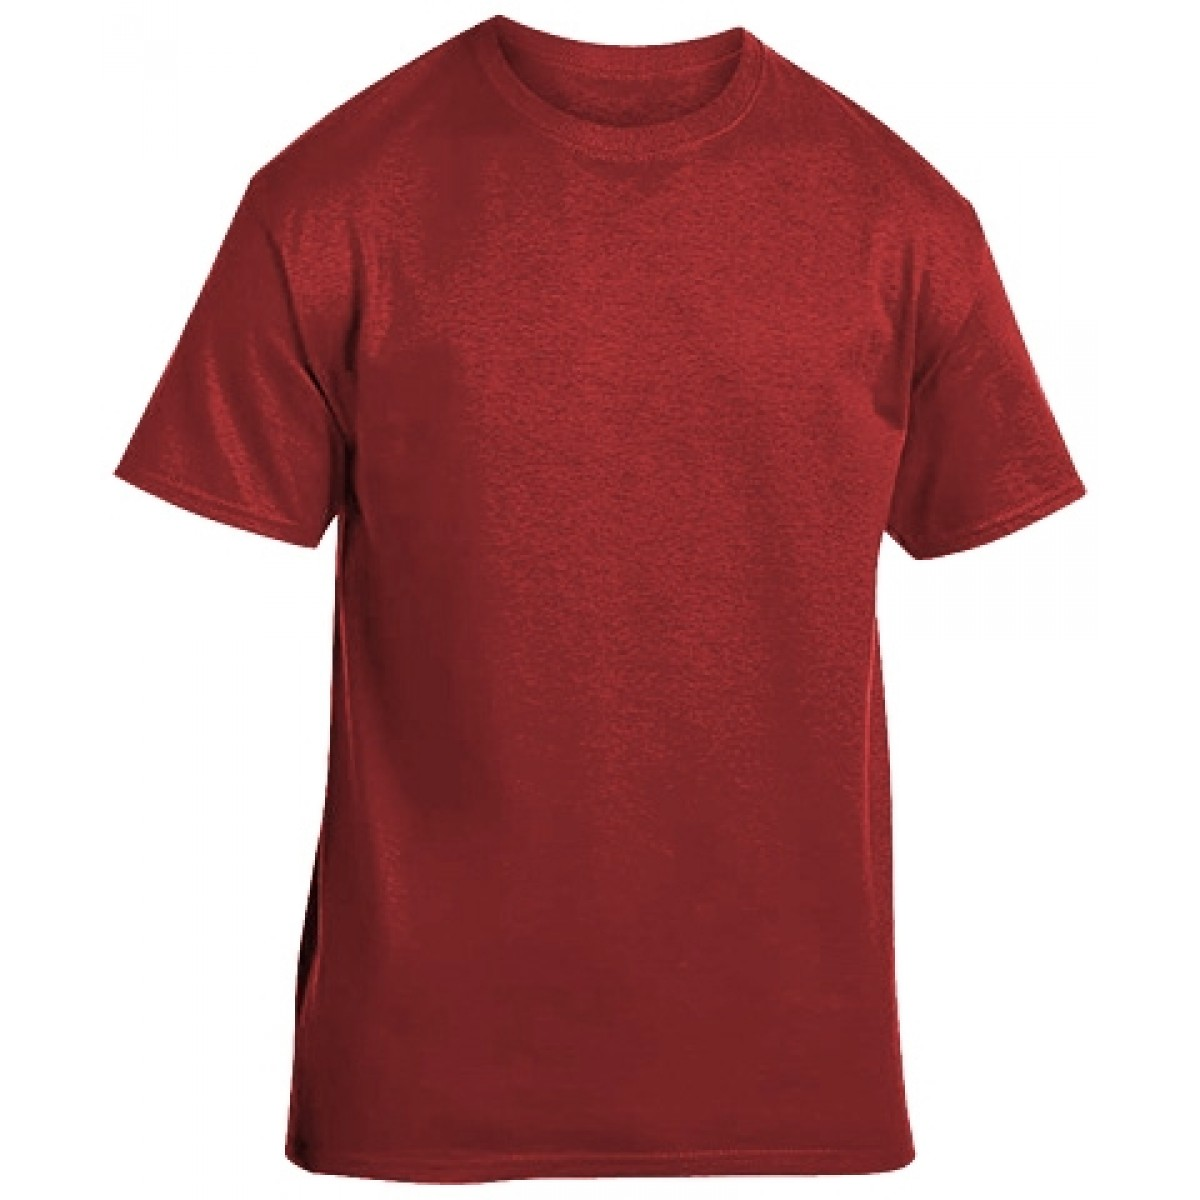 Soft 100% Cotton T-Shirt-Heathered Red-L